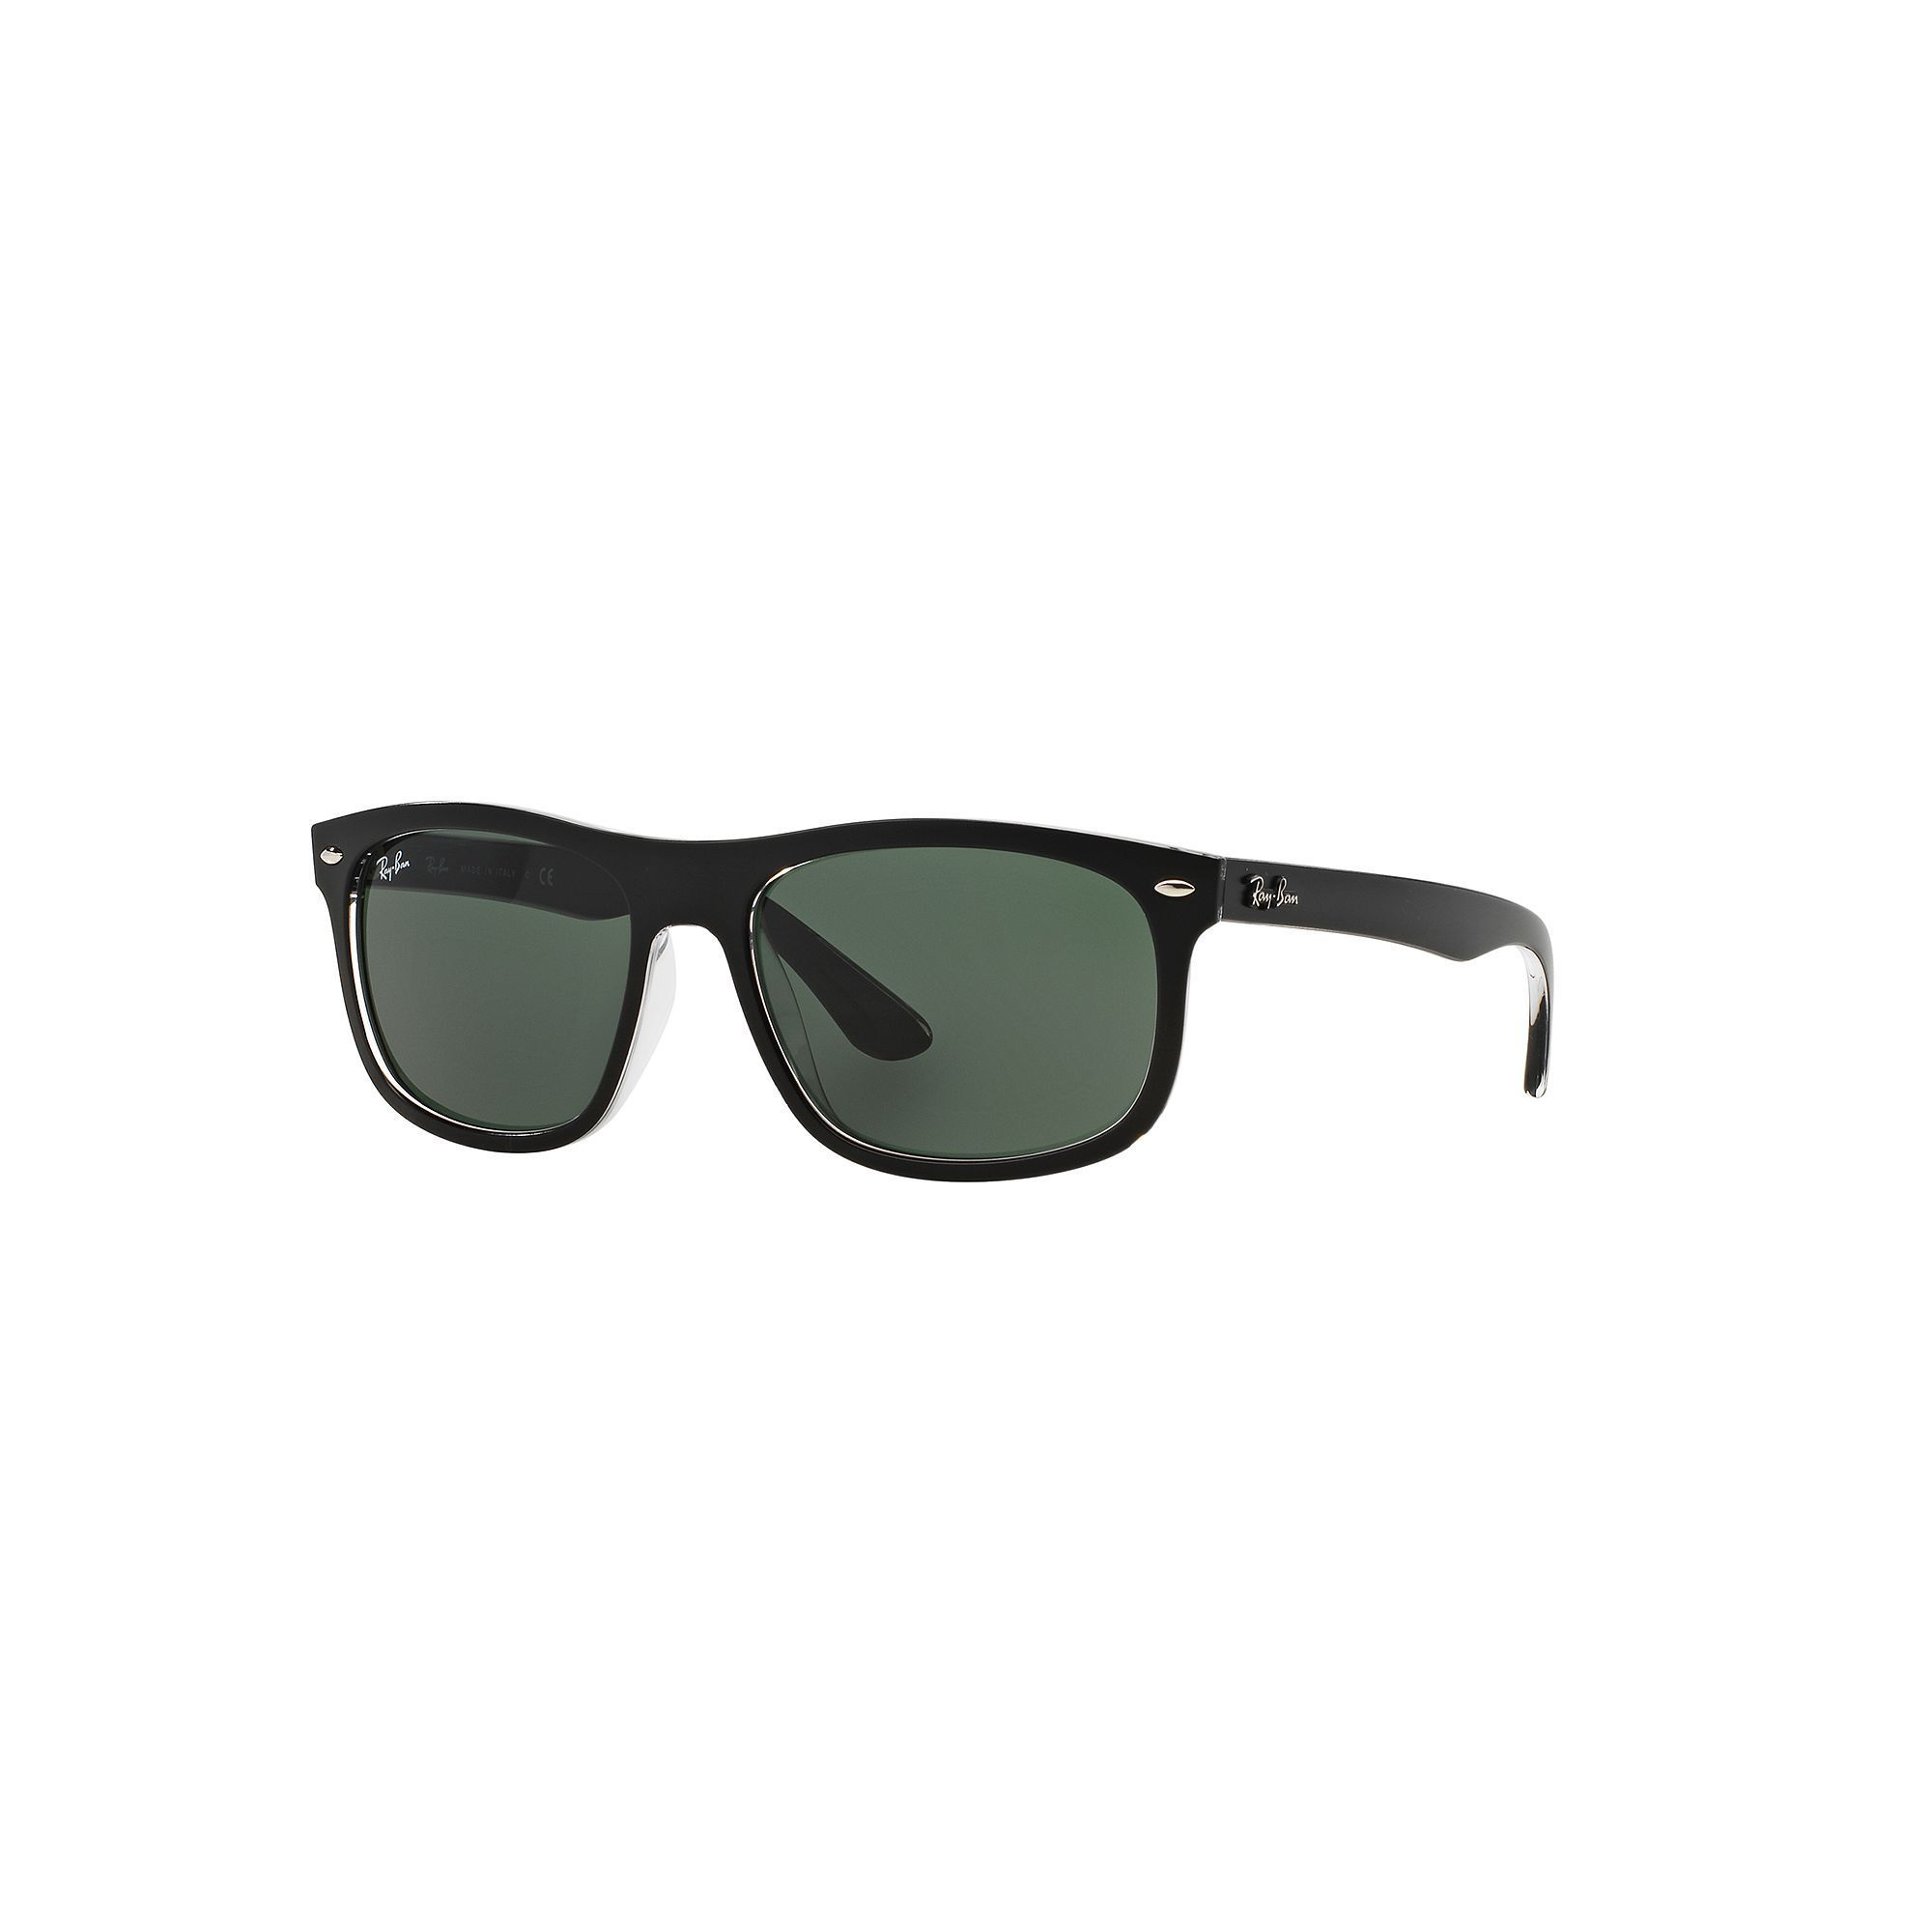 99668a6bef Ray-Ban Hightstreet RB4226 59mm Rectangle Sunglasses